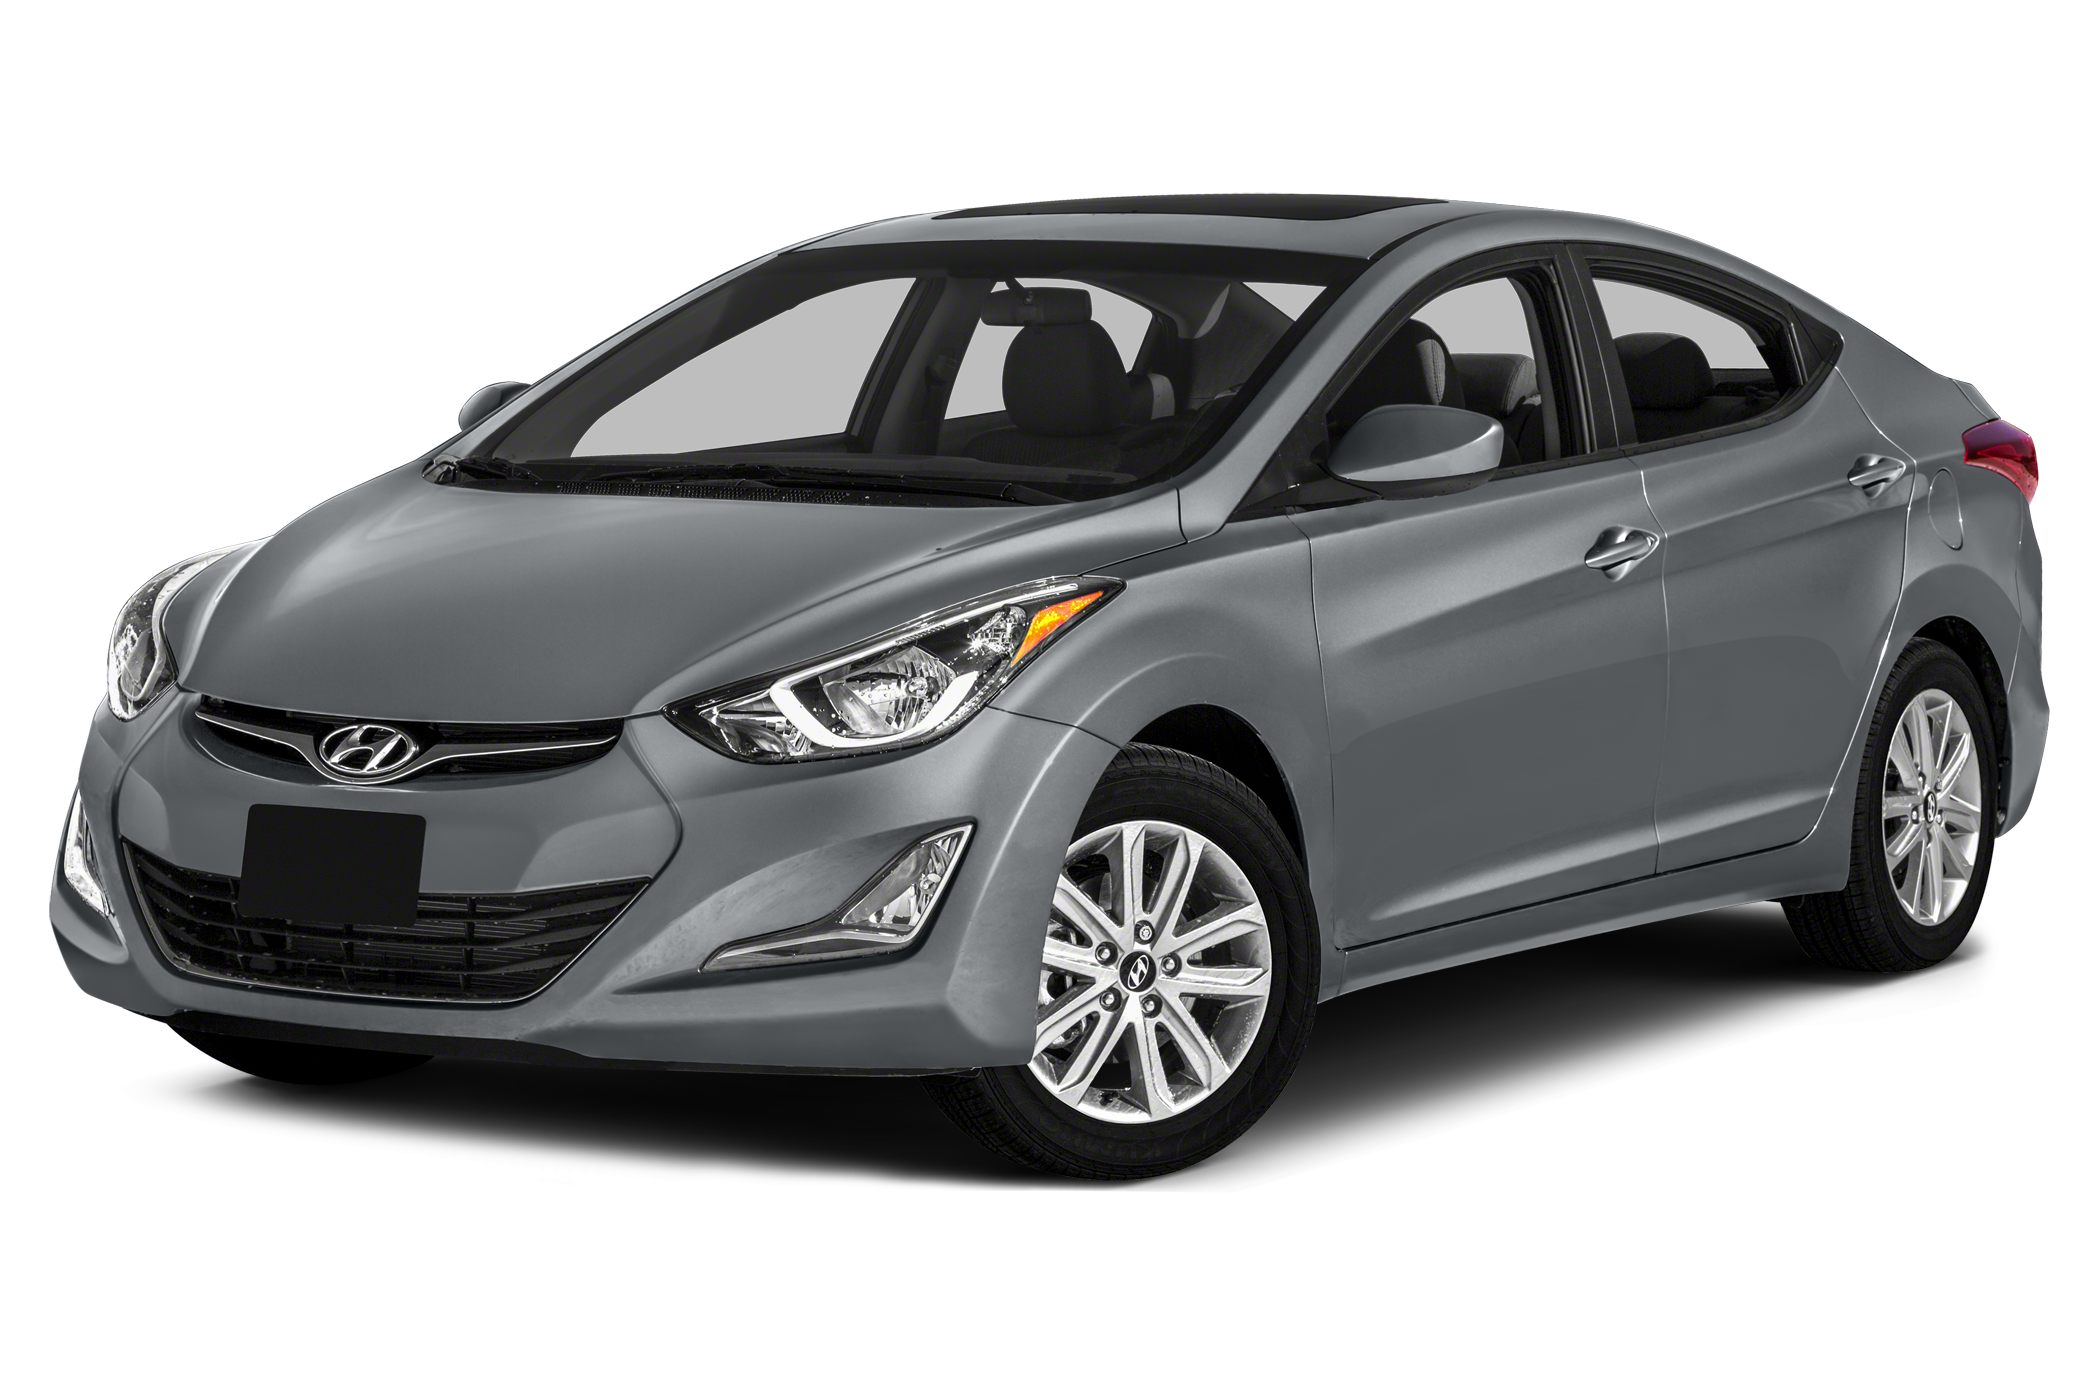 2015 Hyundai Elantra Limited Sedan for sale in Bakersfield for $23,520 with 8 miles.